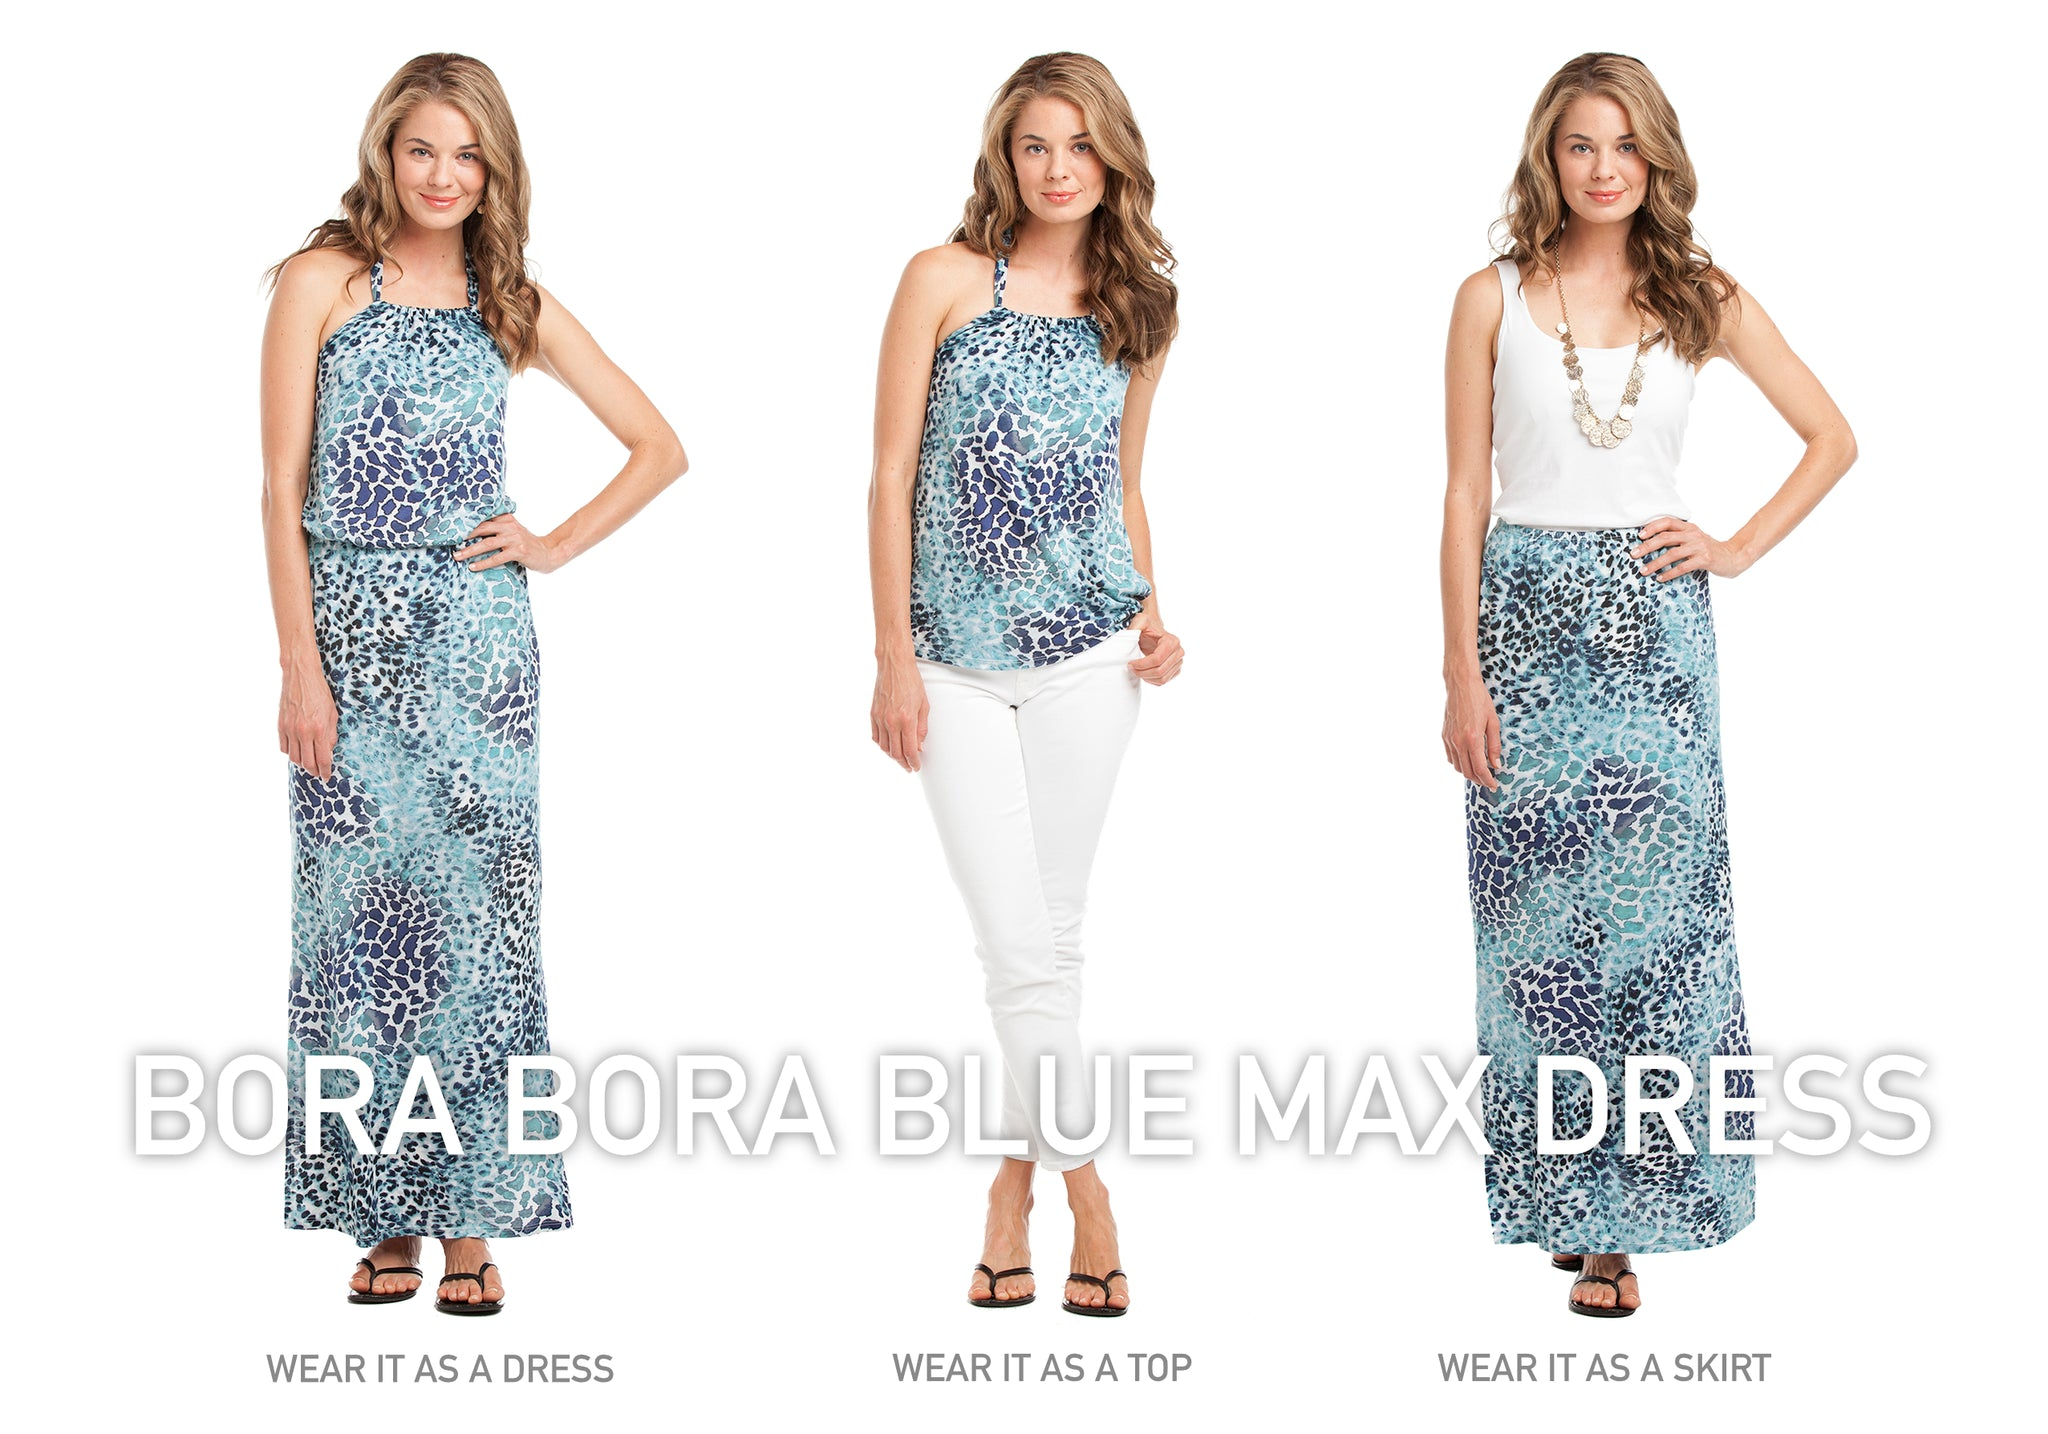 Vacay Bora Bora Maxi Dress wear three ways